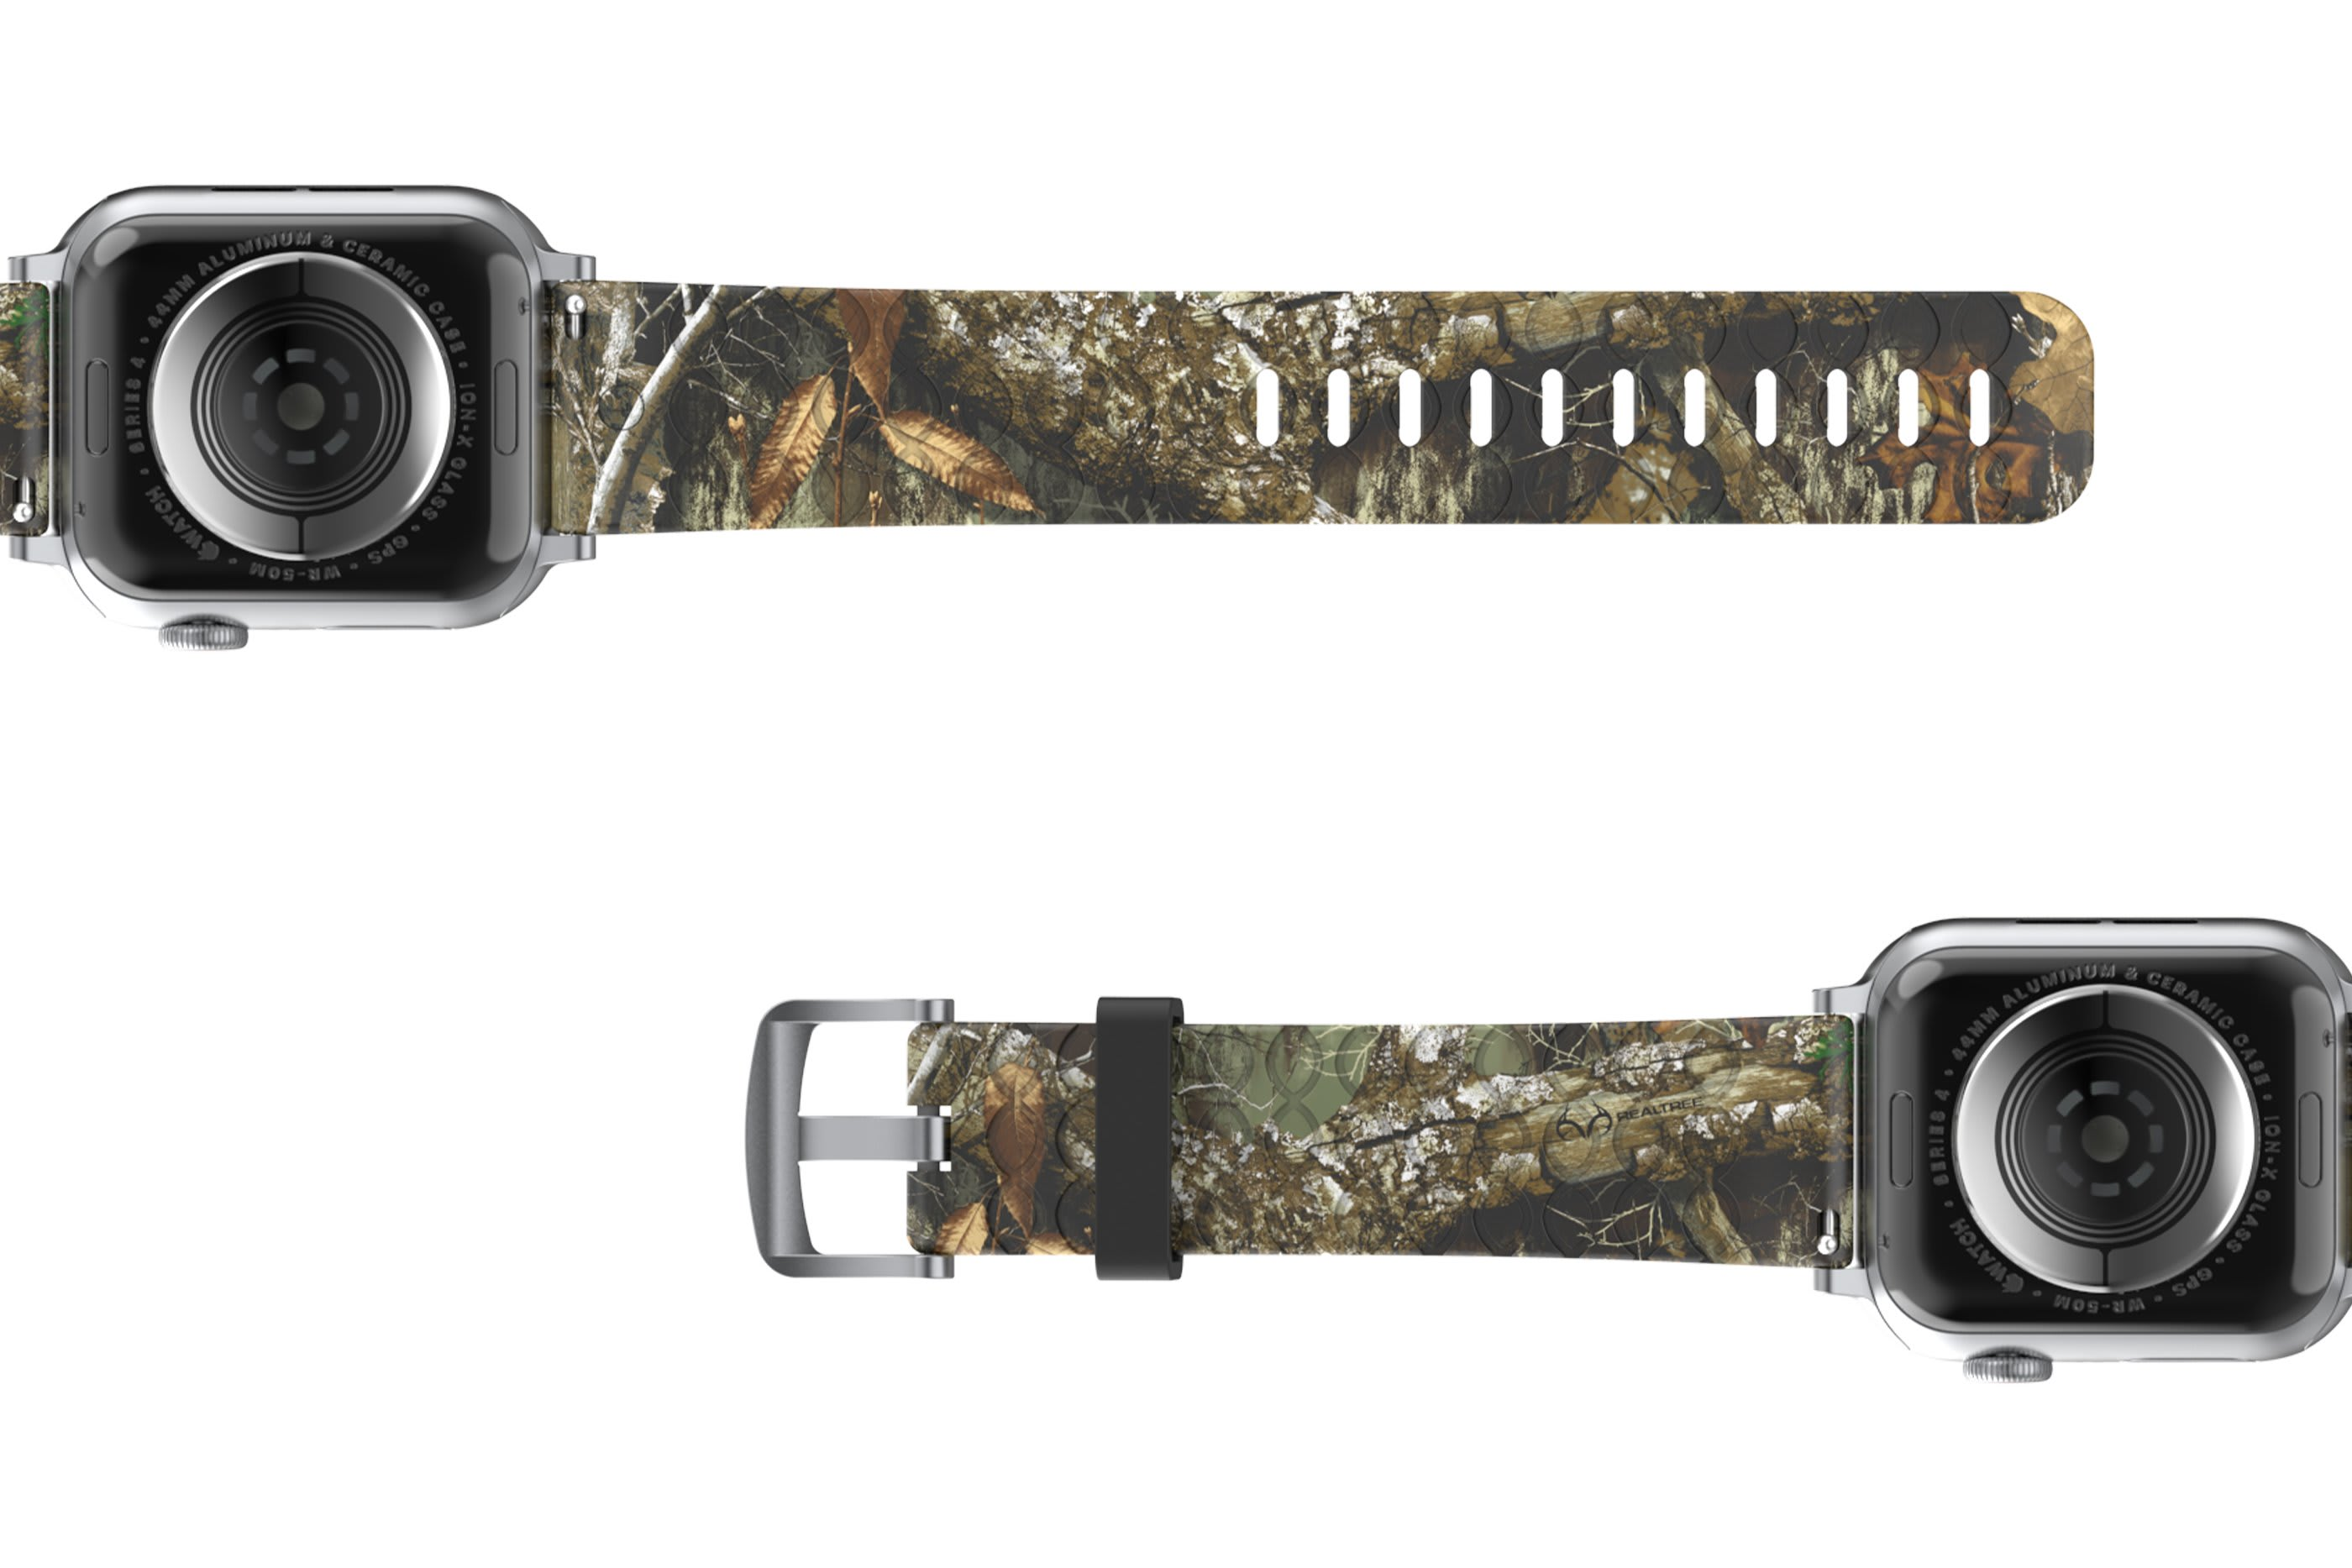 Realtree Edge Apple Watch Band with silver hardware viewed bottom up